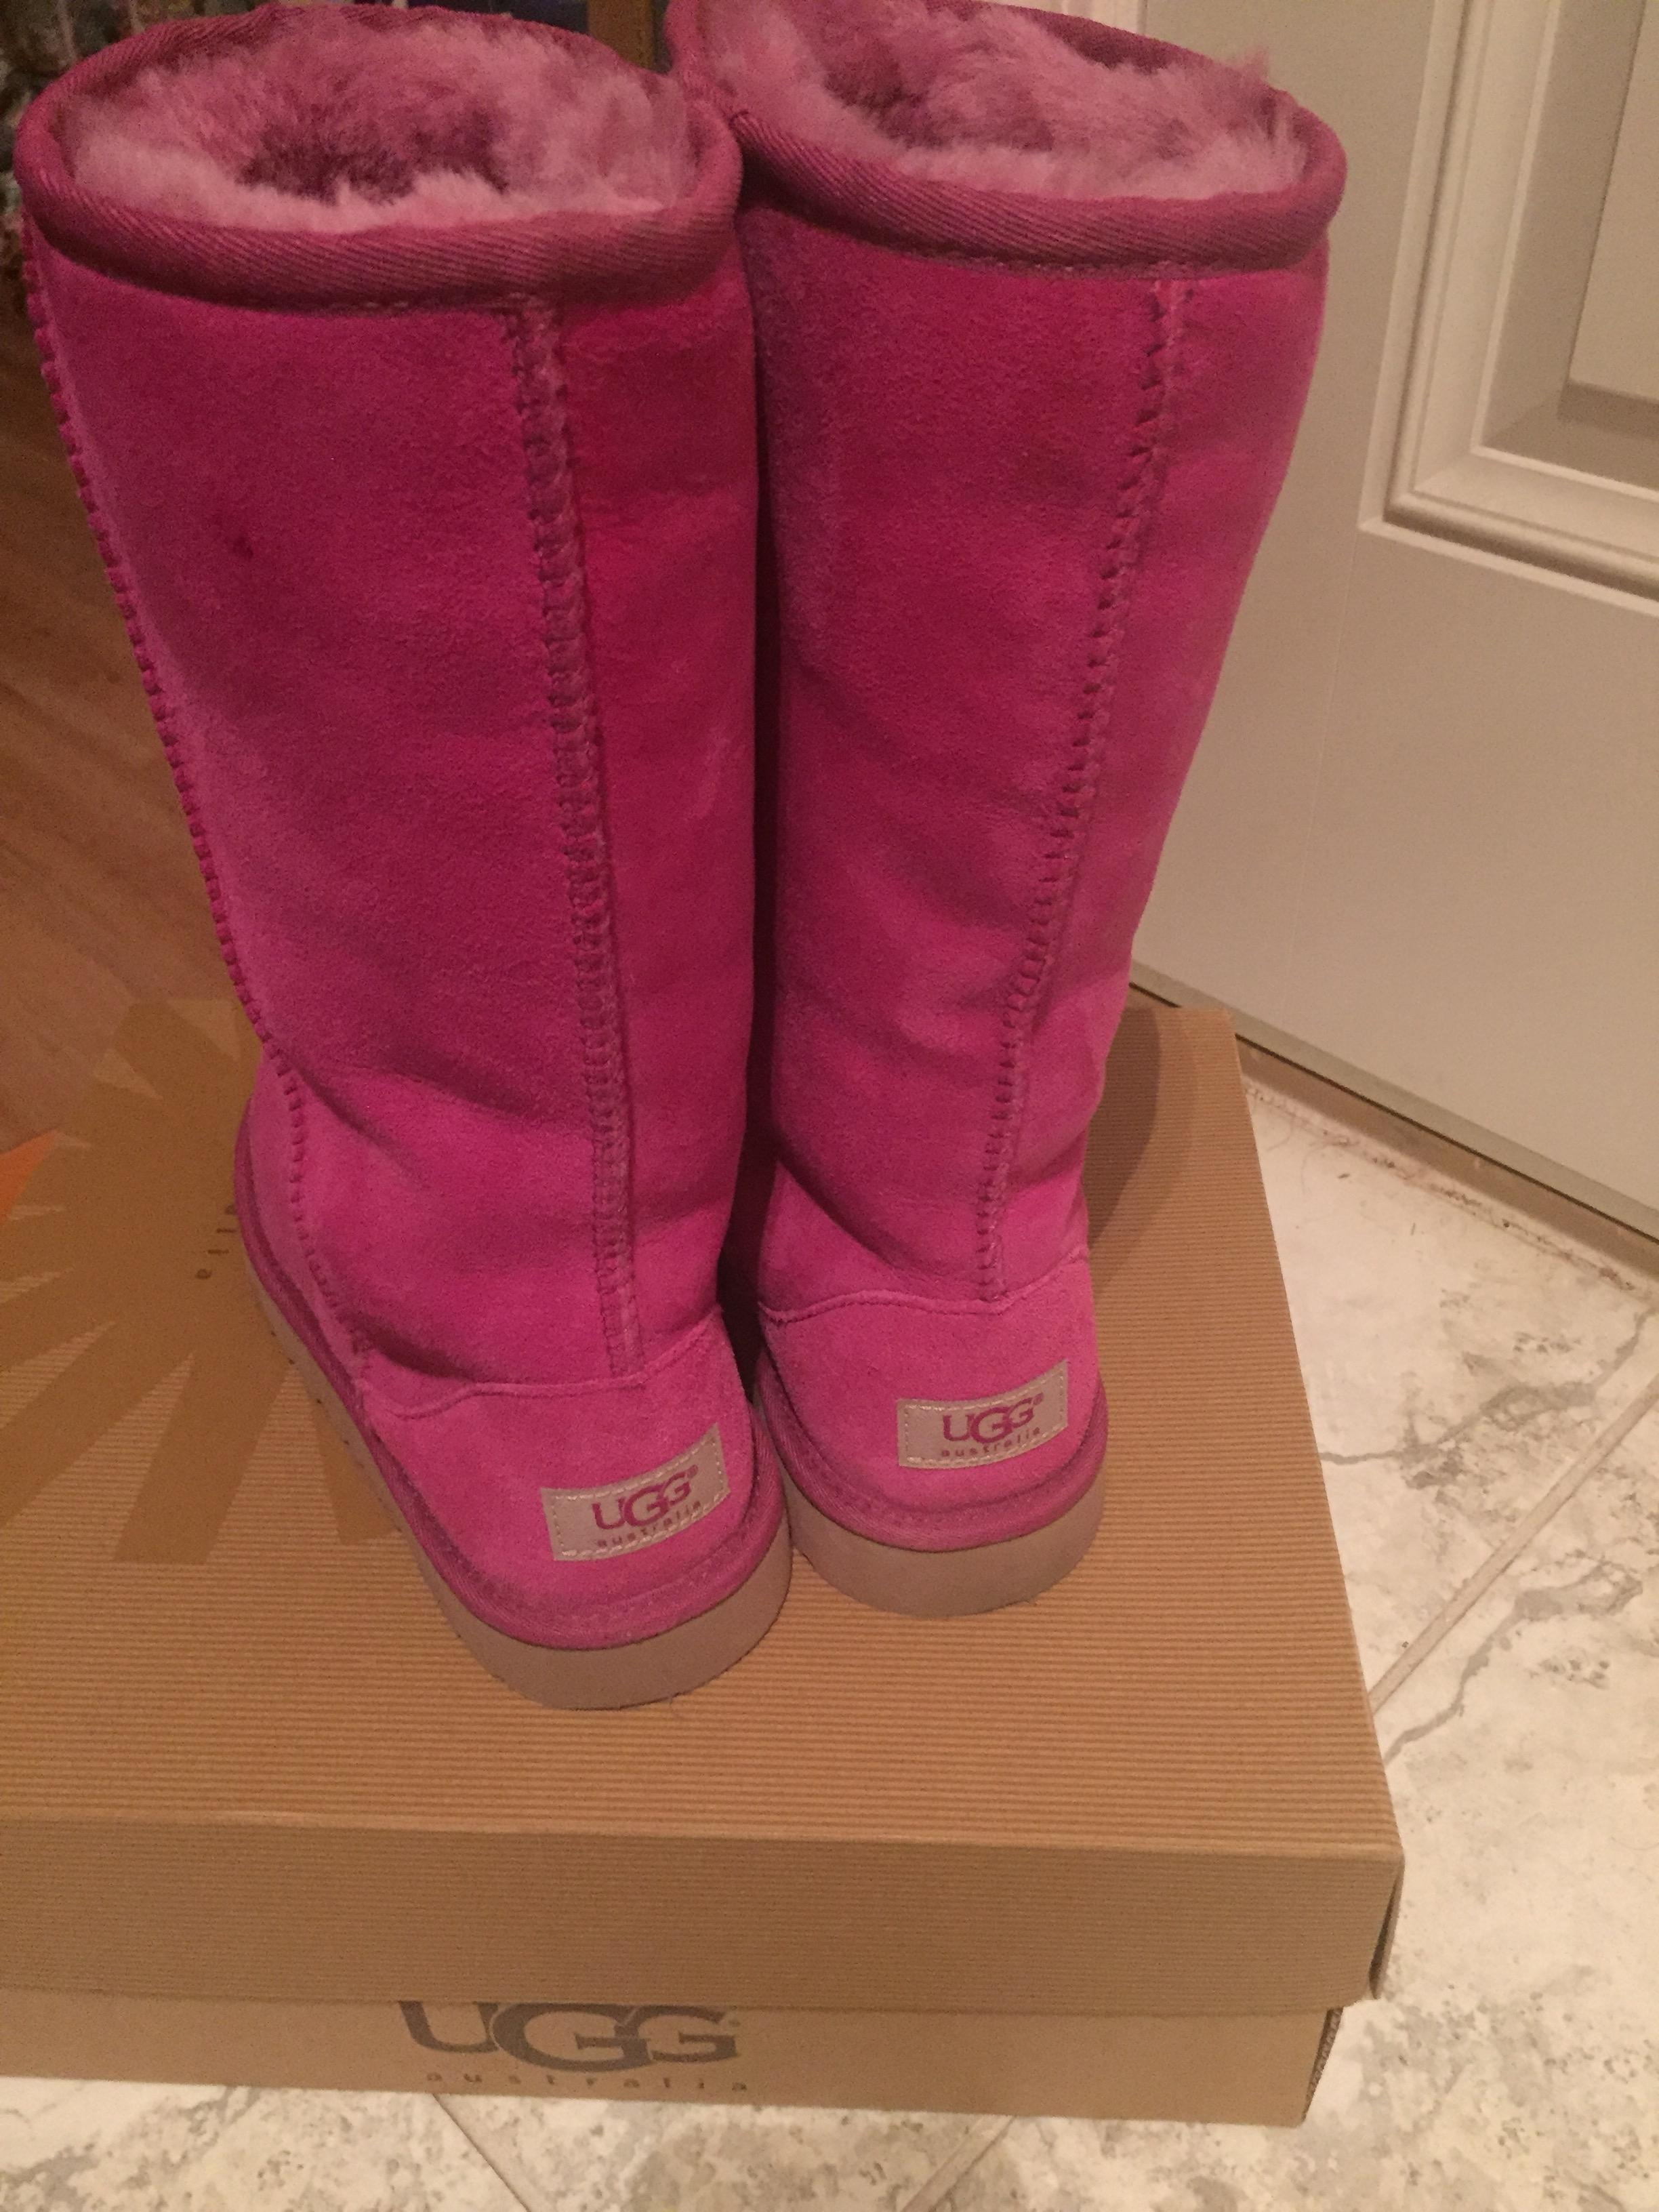 UGG Australia Fuschia Classic Tall Big Kids Fits Women Boots/Booties Size US 4 Regular (M, B) - Tradesy